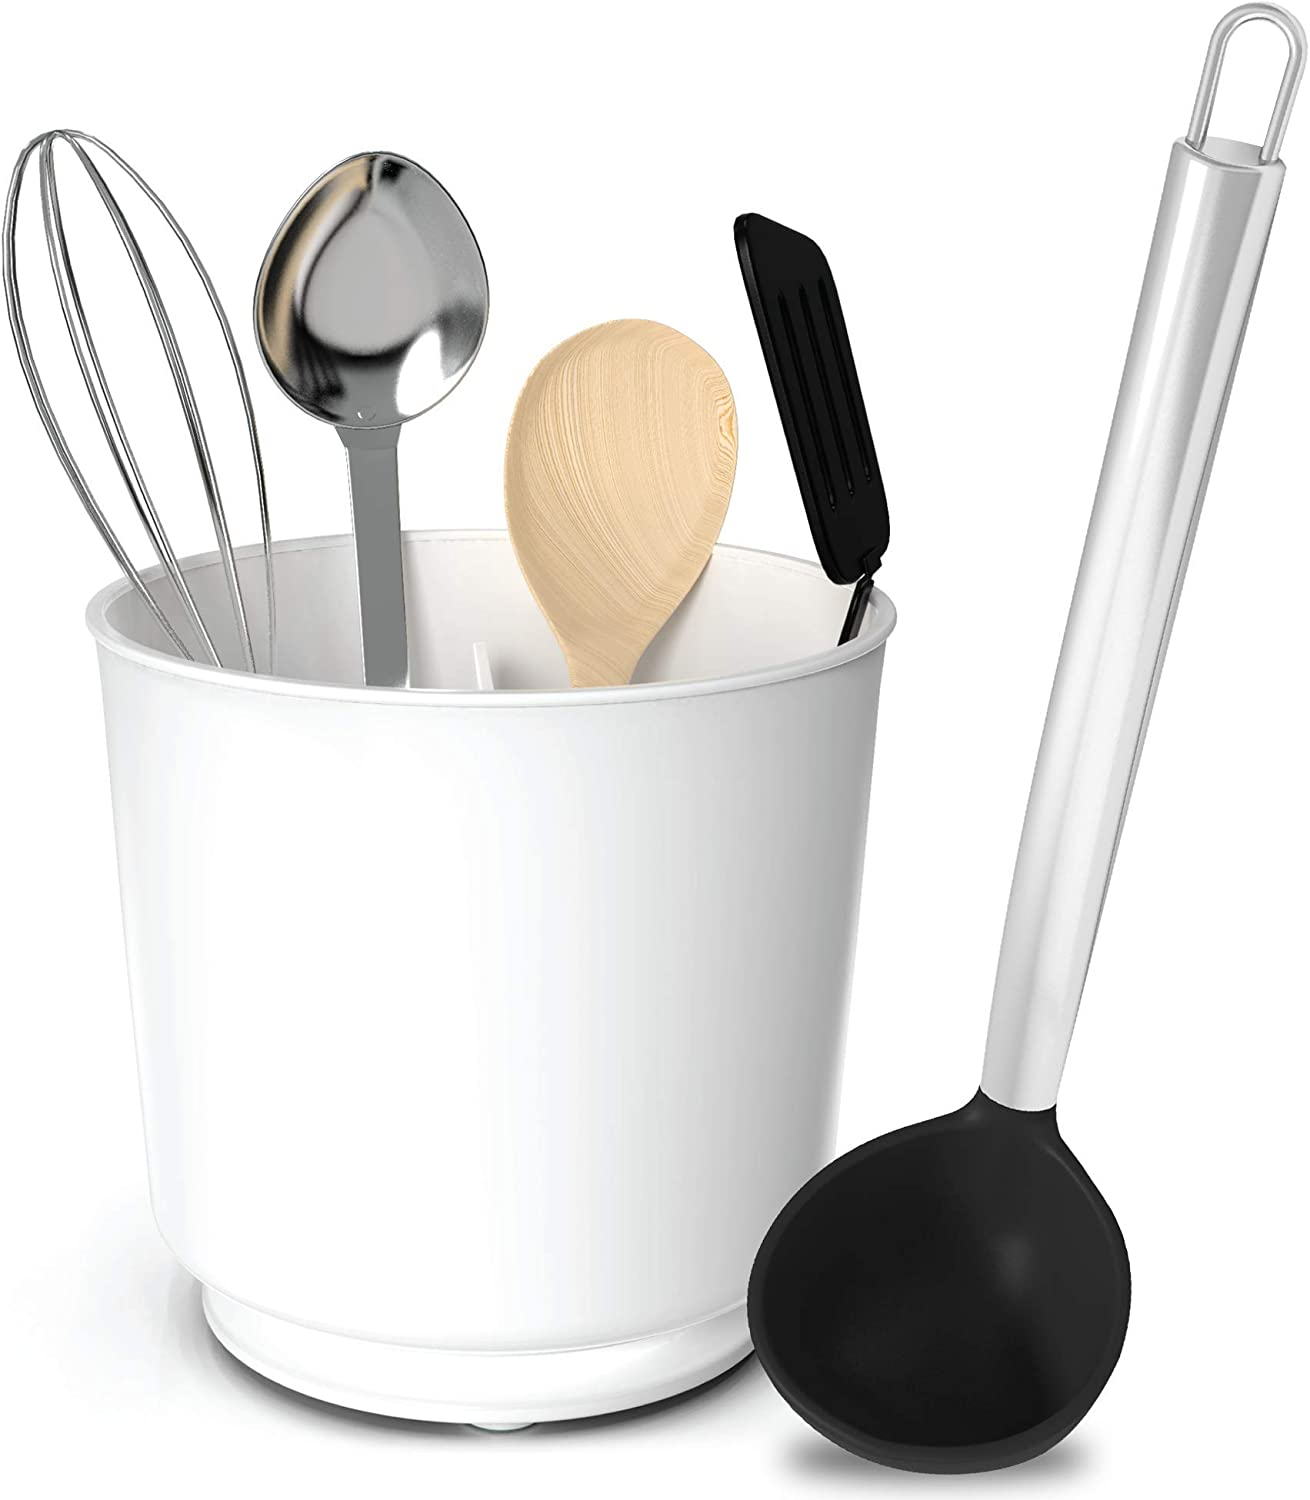 Extra Large Rotating Utensil Holder Caddy & Silicone & Stainless Steel  Black 20 Ounce Soup Ladle